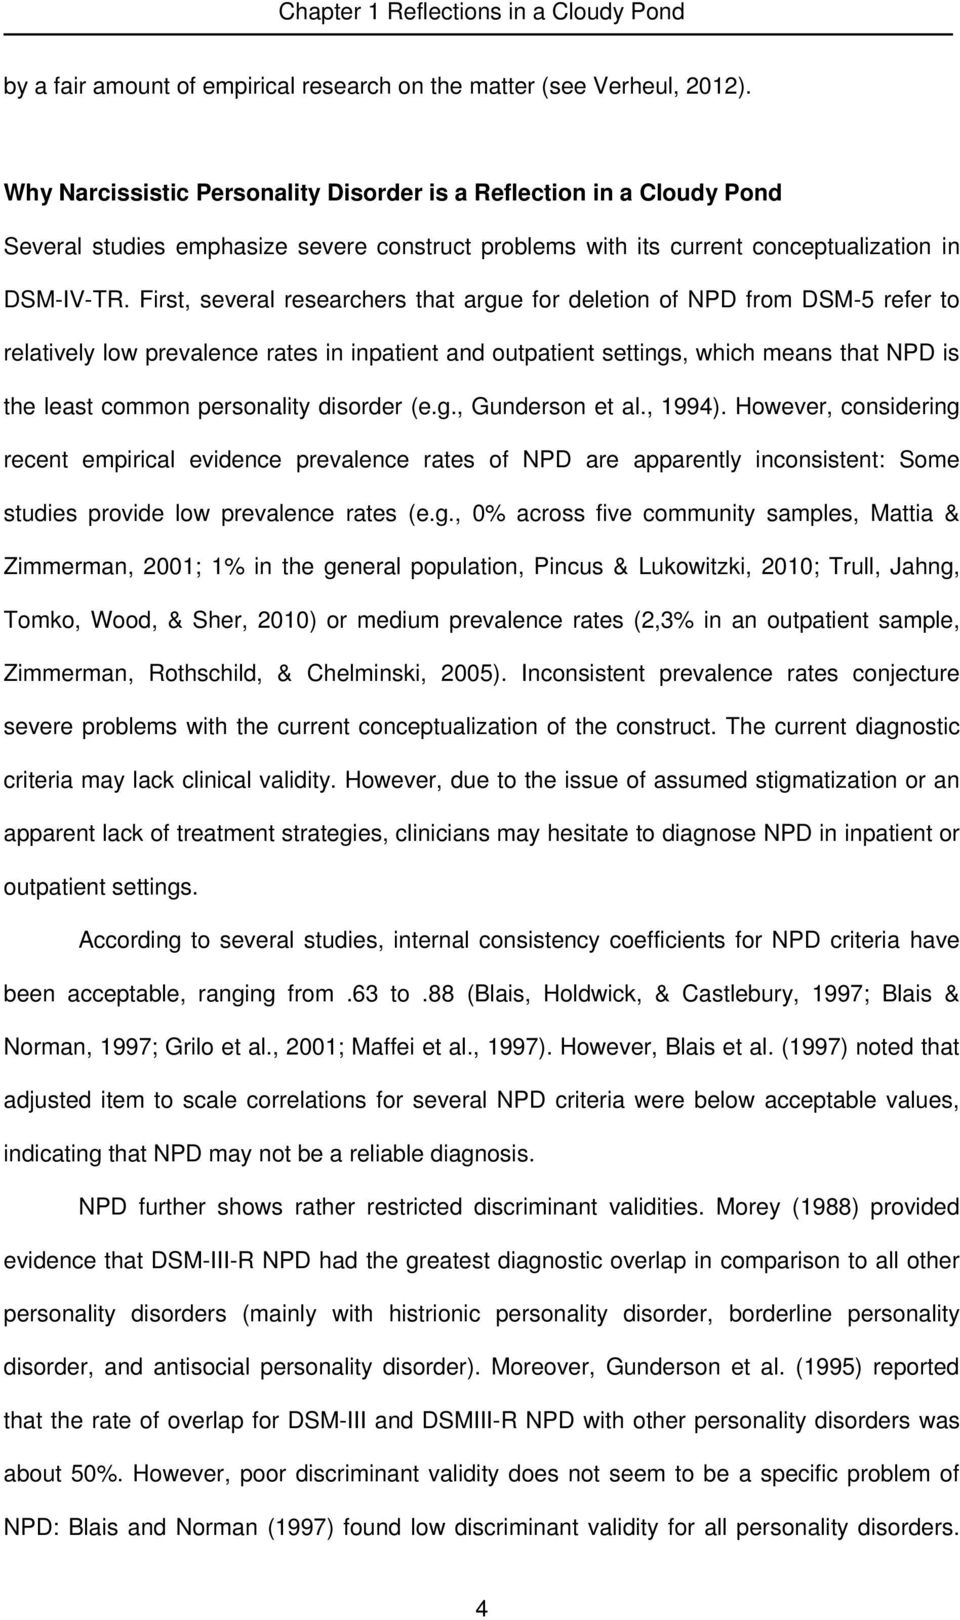 First, several researchers that argue for deletion of NPD from DSM-5 refer to relatively low prevalence rates in inpatient and outpatient settings, which means that NPD is the least common